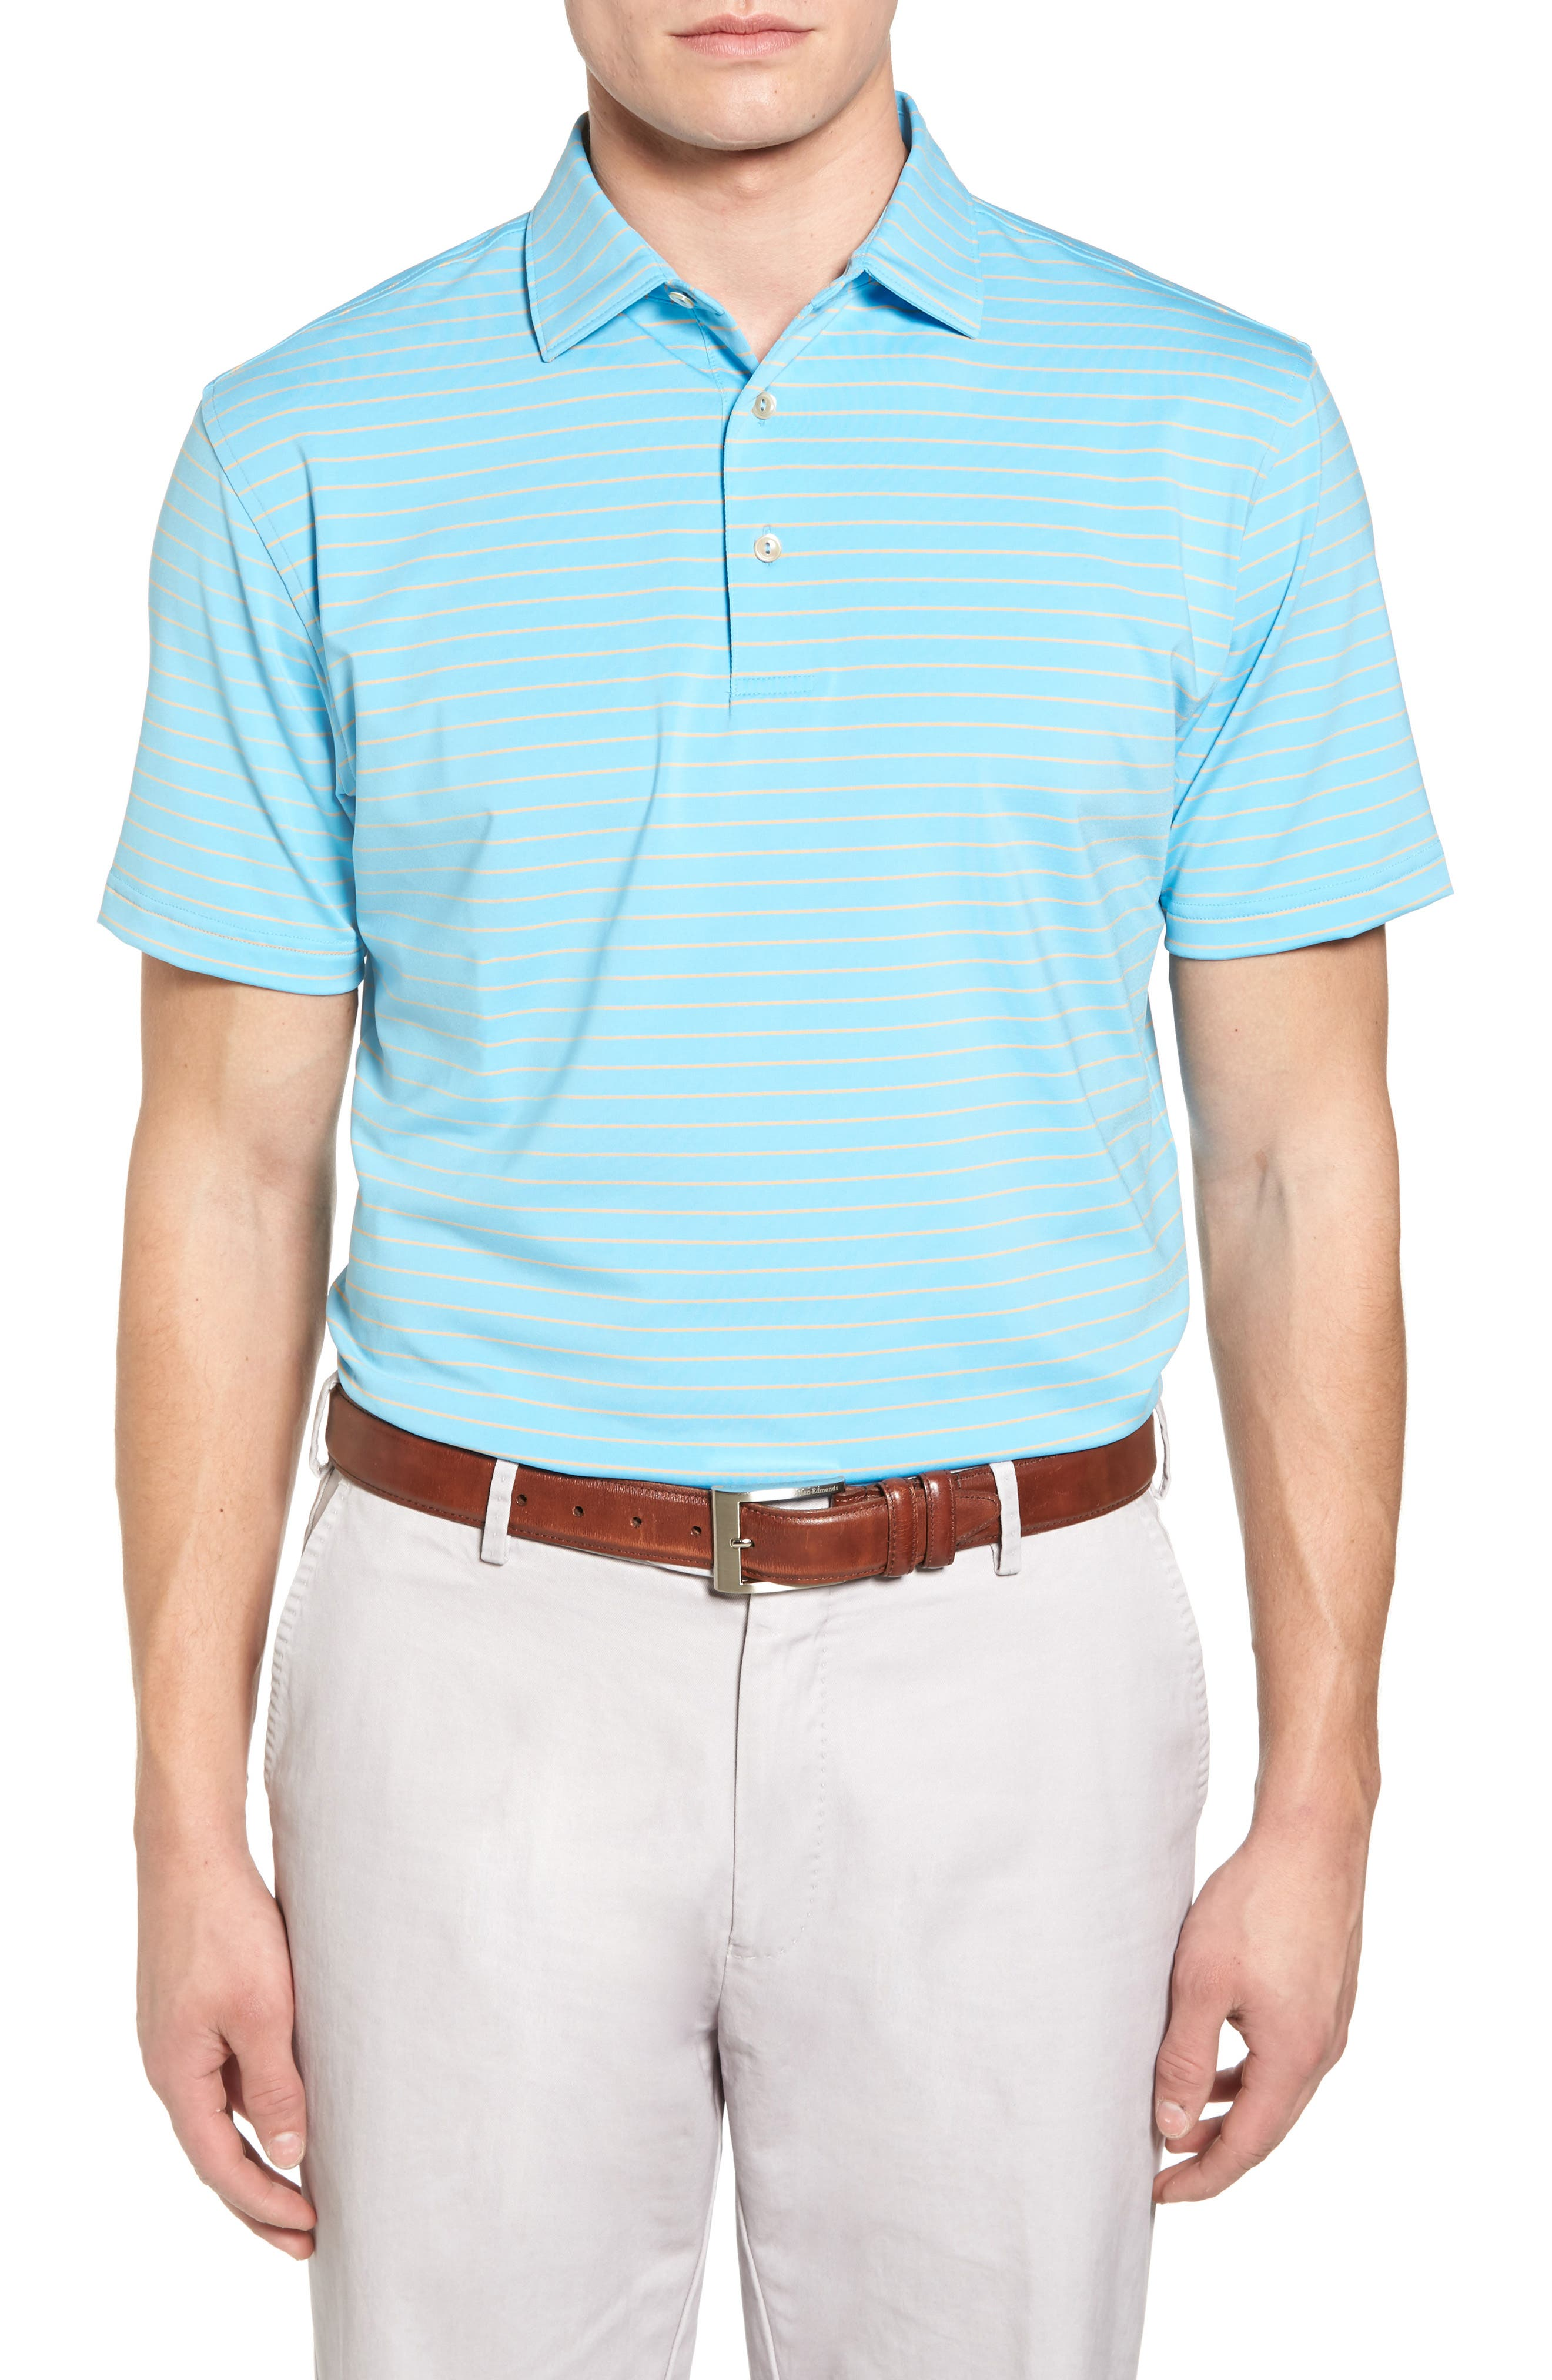 Halifax Pinstripe Stretch Jersey Polo,                         Main,                         color, 477